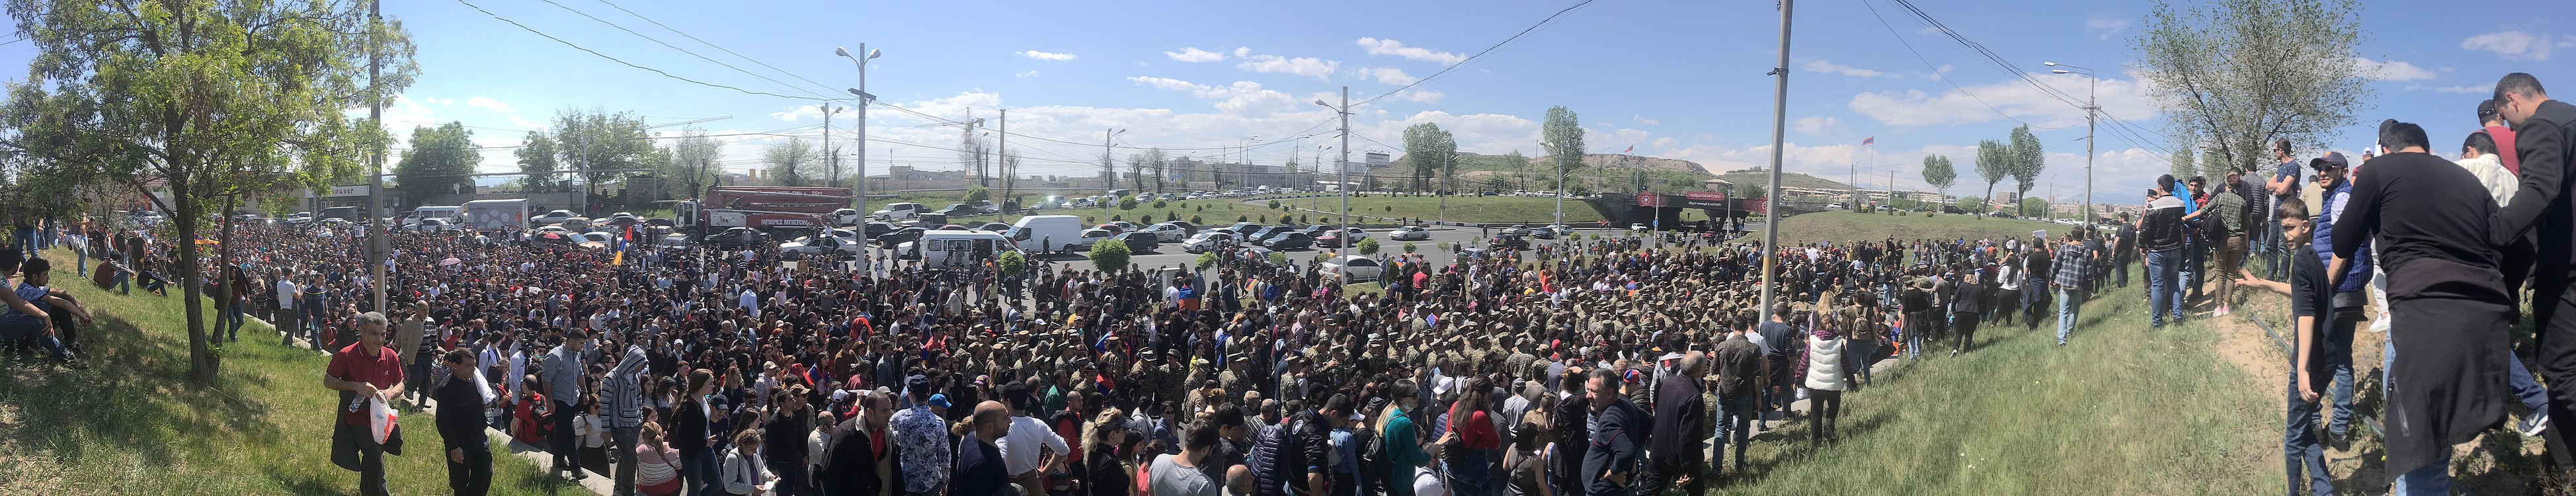 23.04.2018 Protest Demonstration, Yerevan 45.jpg